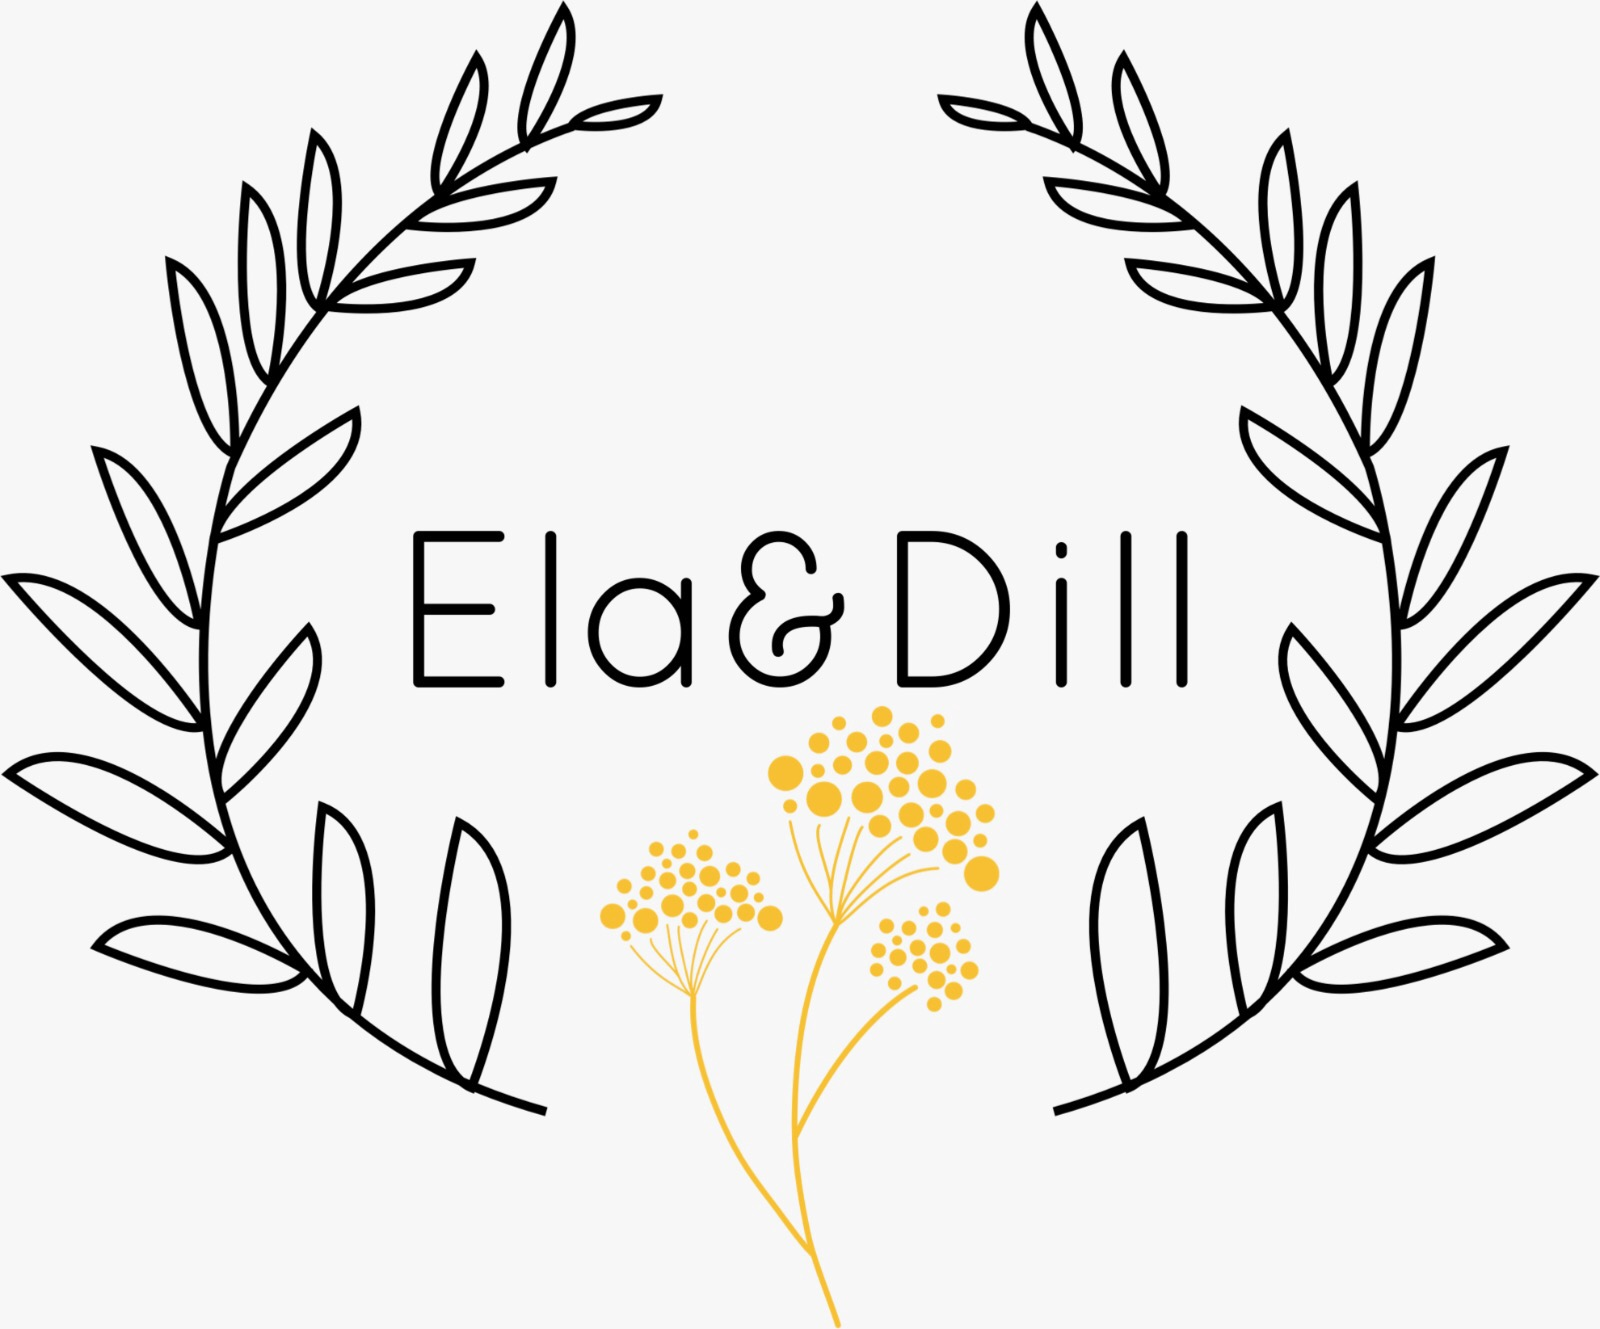 Ela and Dill's Creative Writing Services